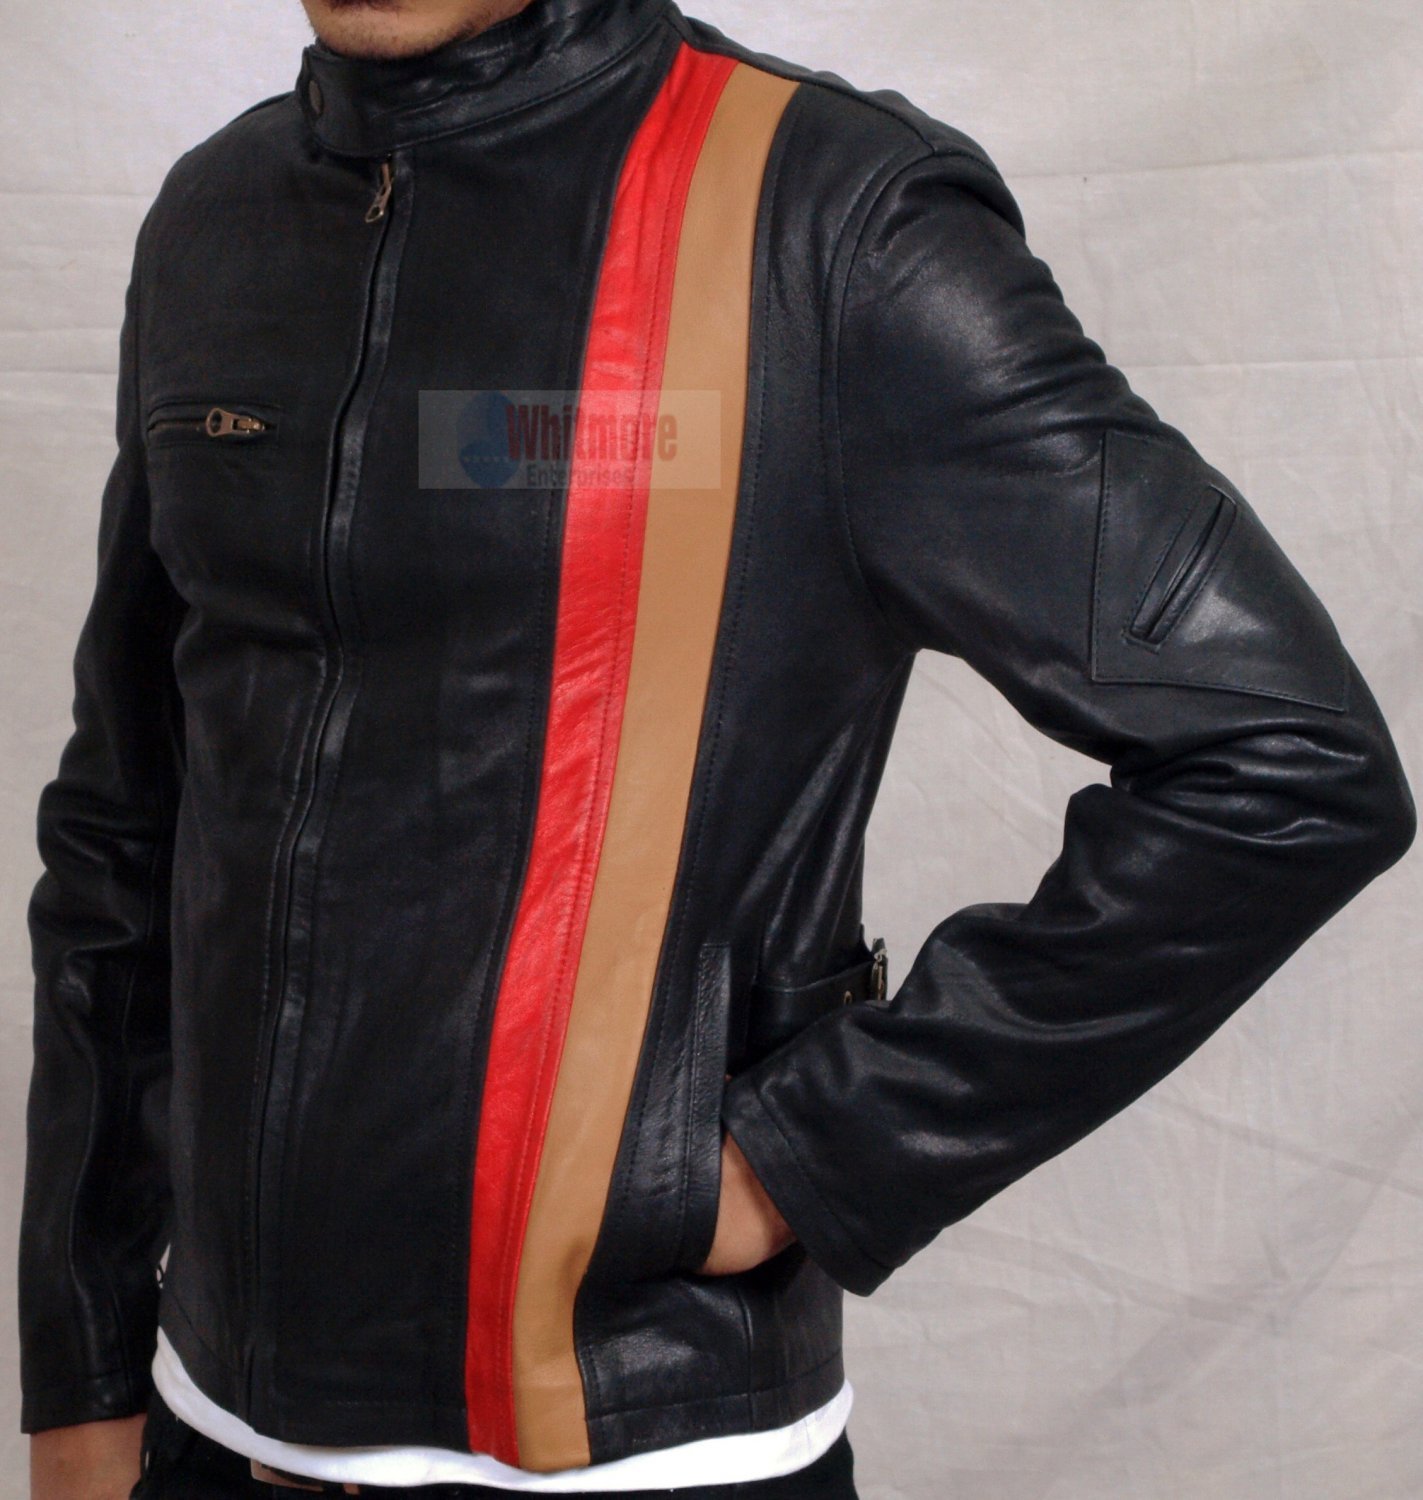 X-Men XMen Cyclop Original Stylish Leather Jacket - All Sizes